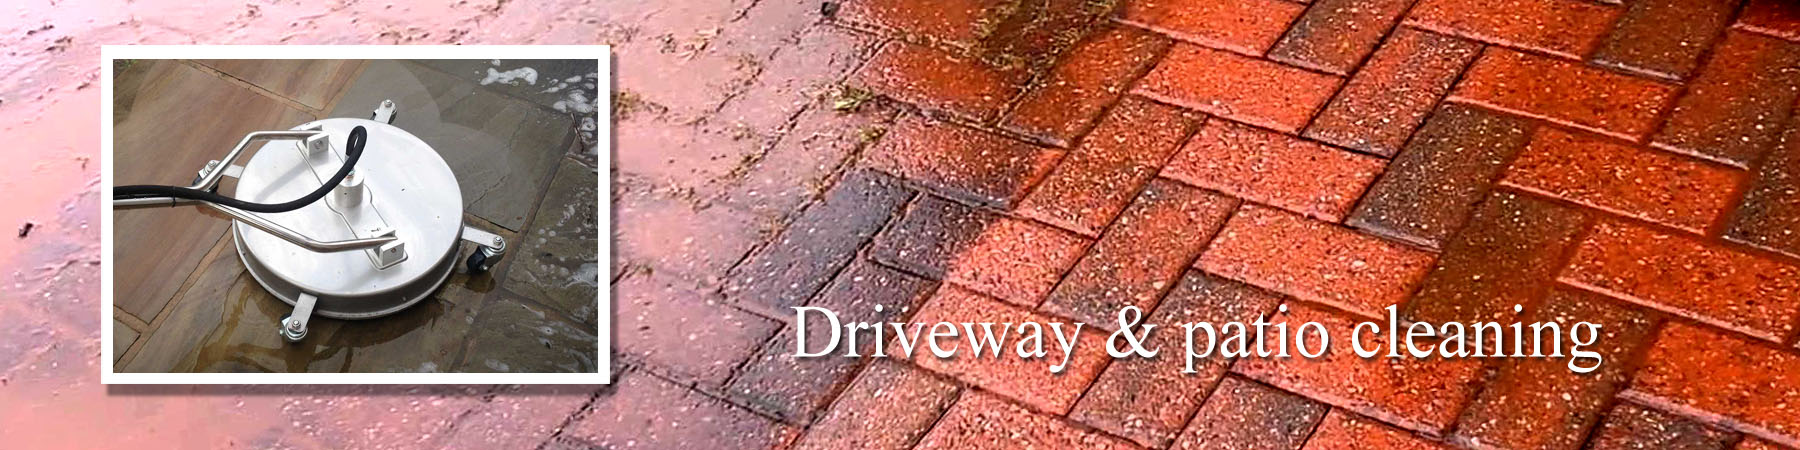 Driveway Cleaning Hemel Hempstead J R Cleaning